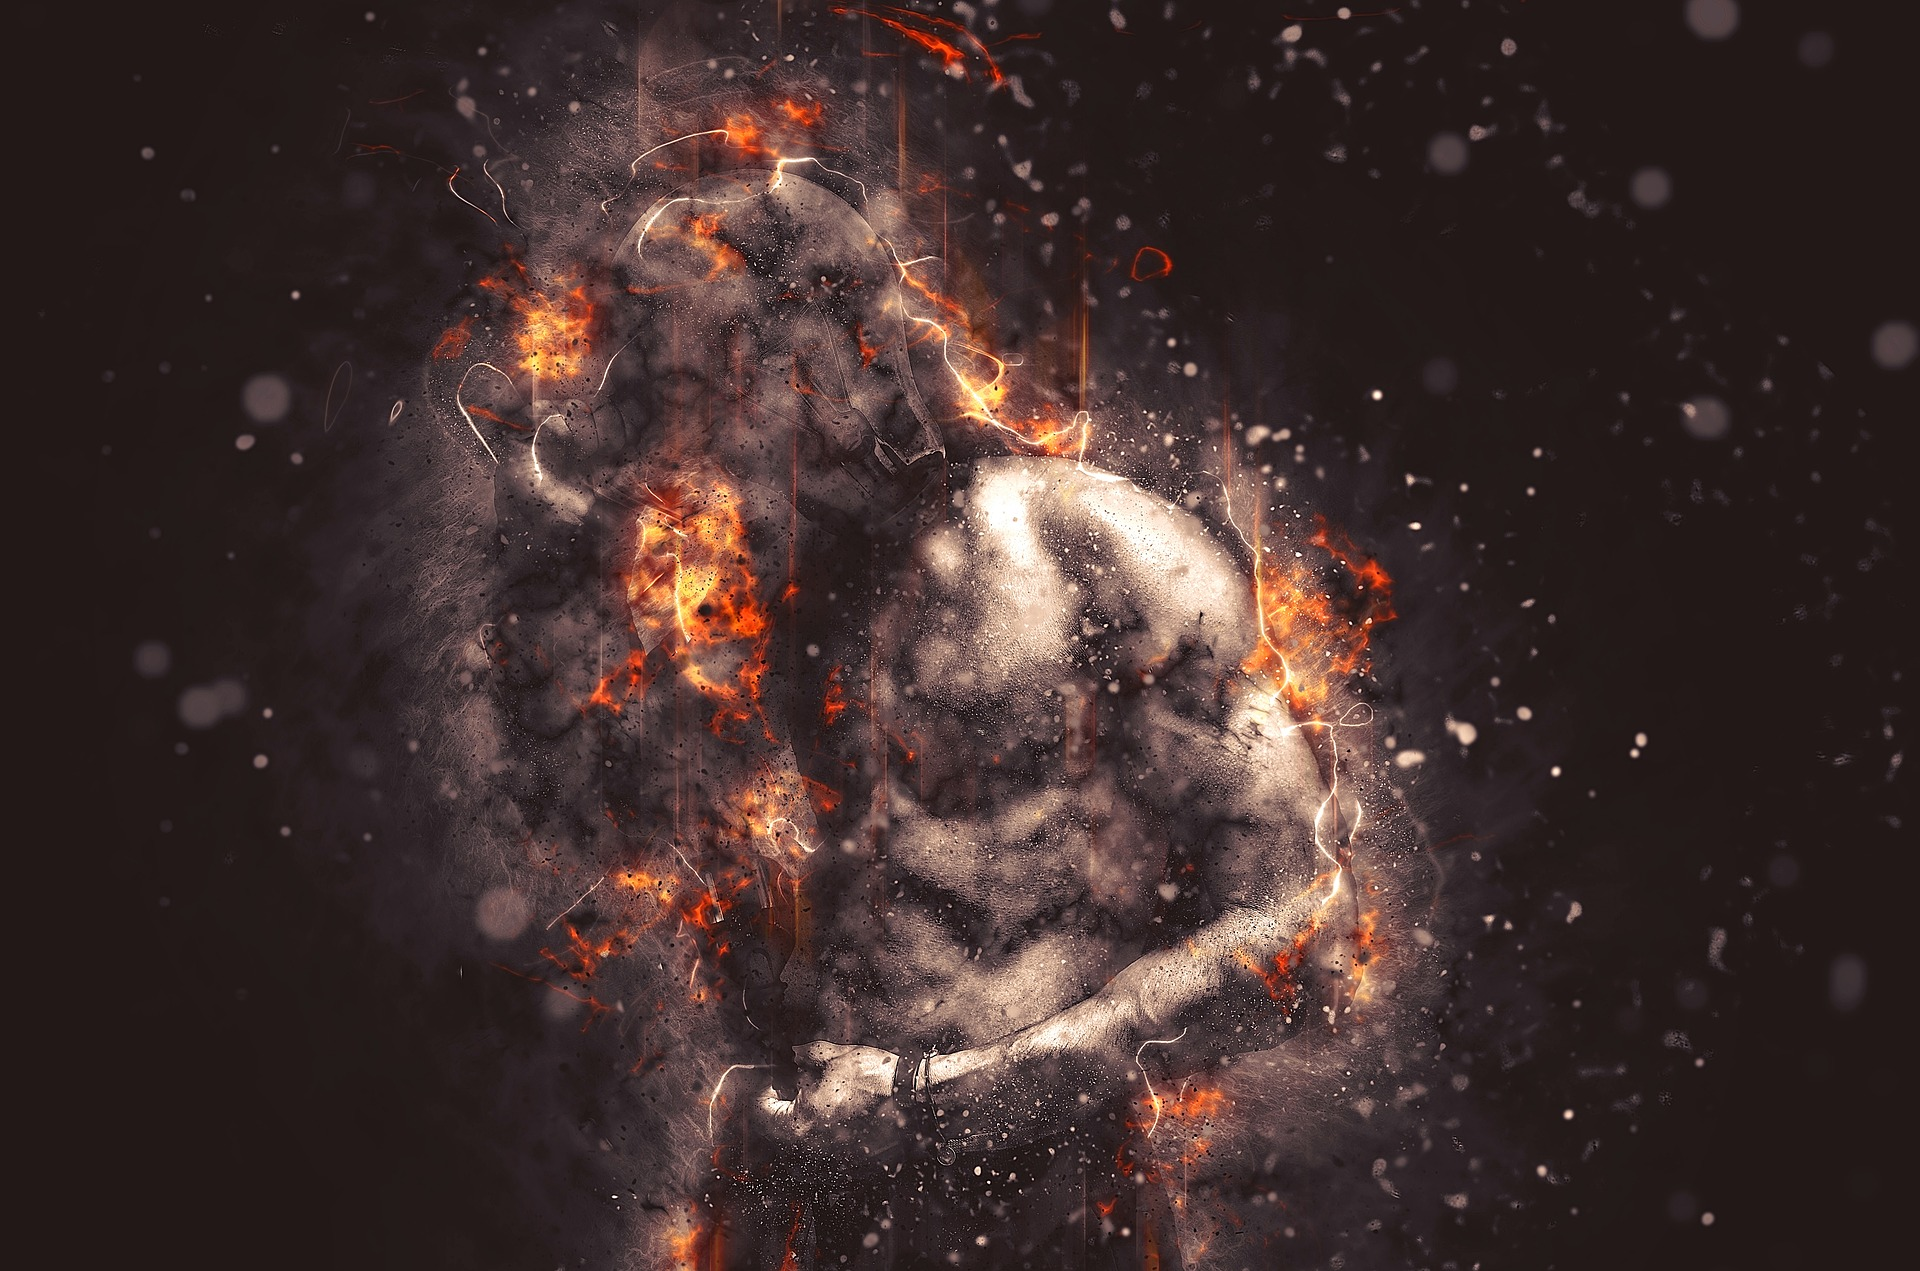 When we dwell in the anger, hold it too tight or too long, it can burn us utterly.